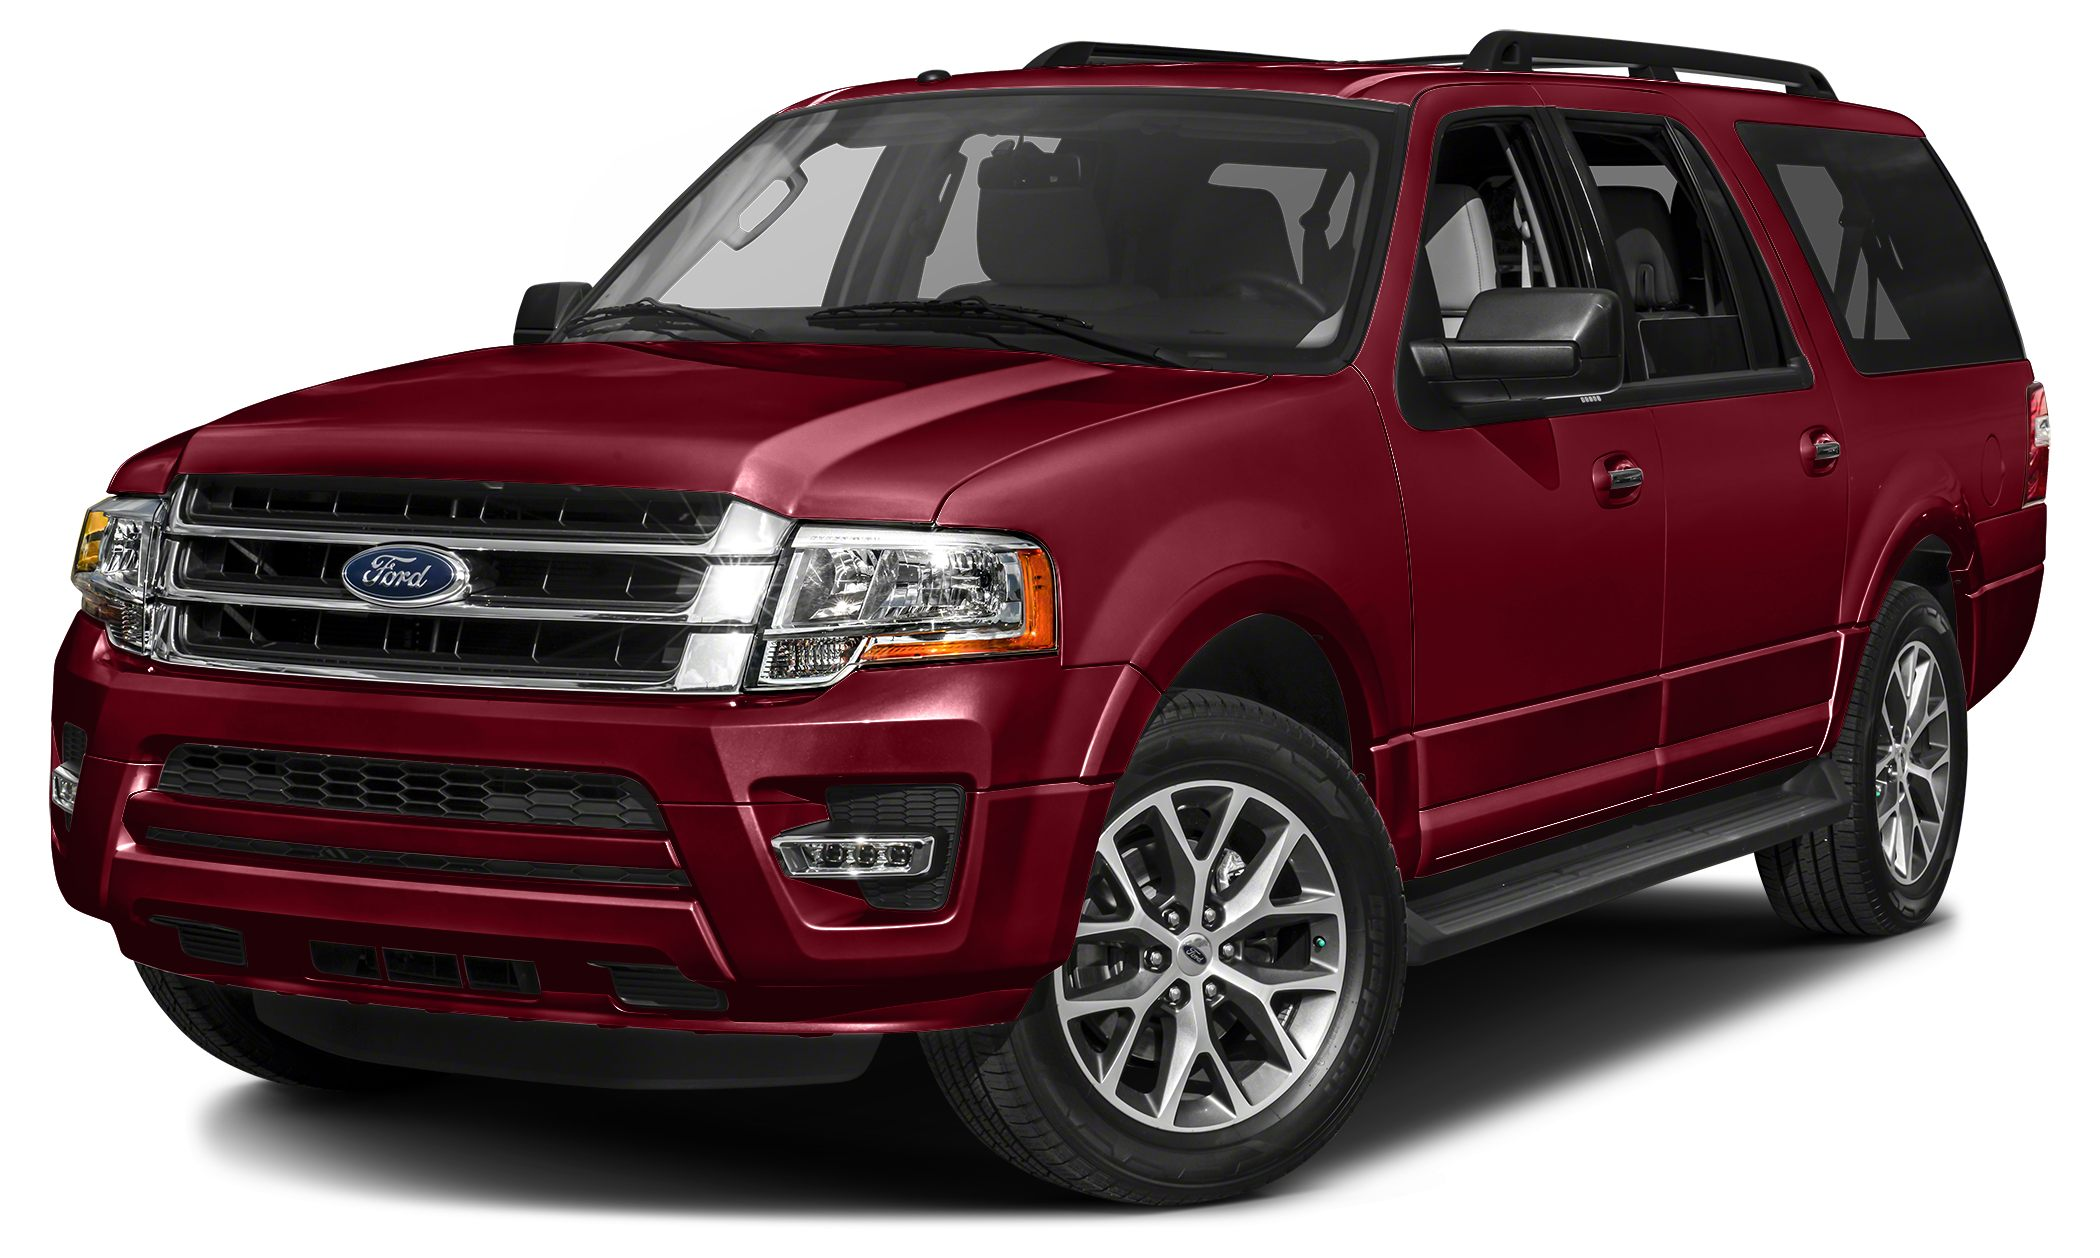 2015 Ford Expedition EL XLT This 2015 Ford Expedition EL 2WD 4dr XLT is offered to you for sale by